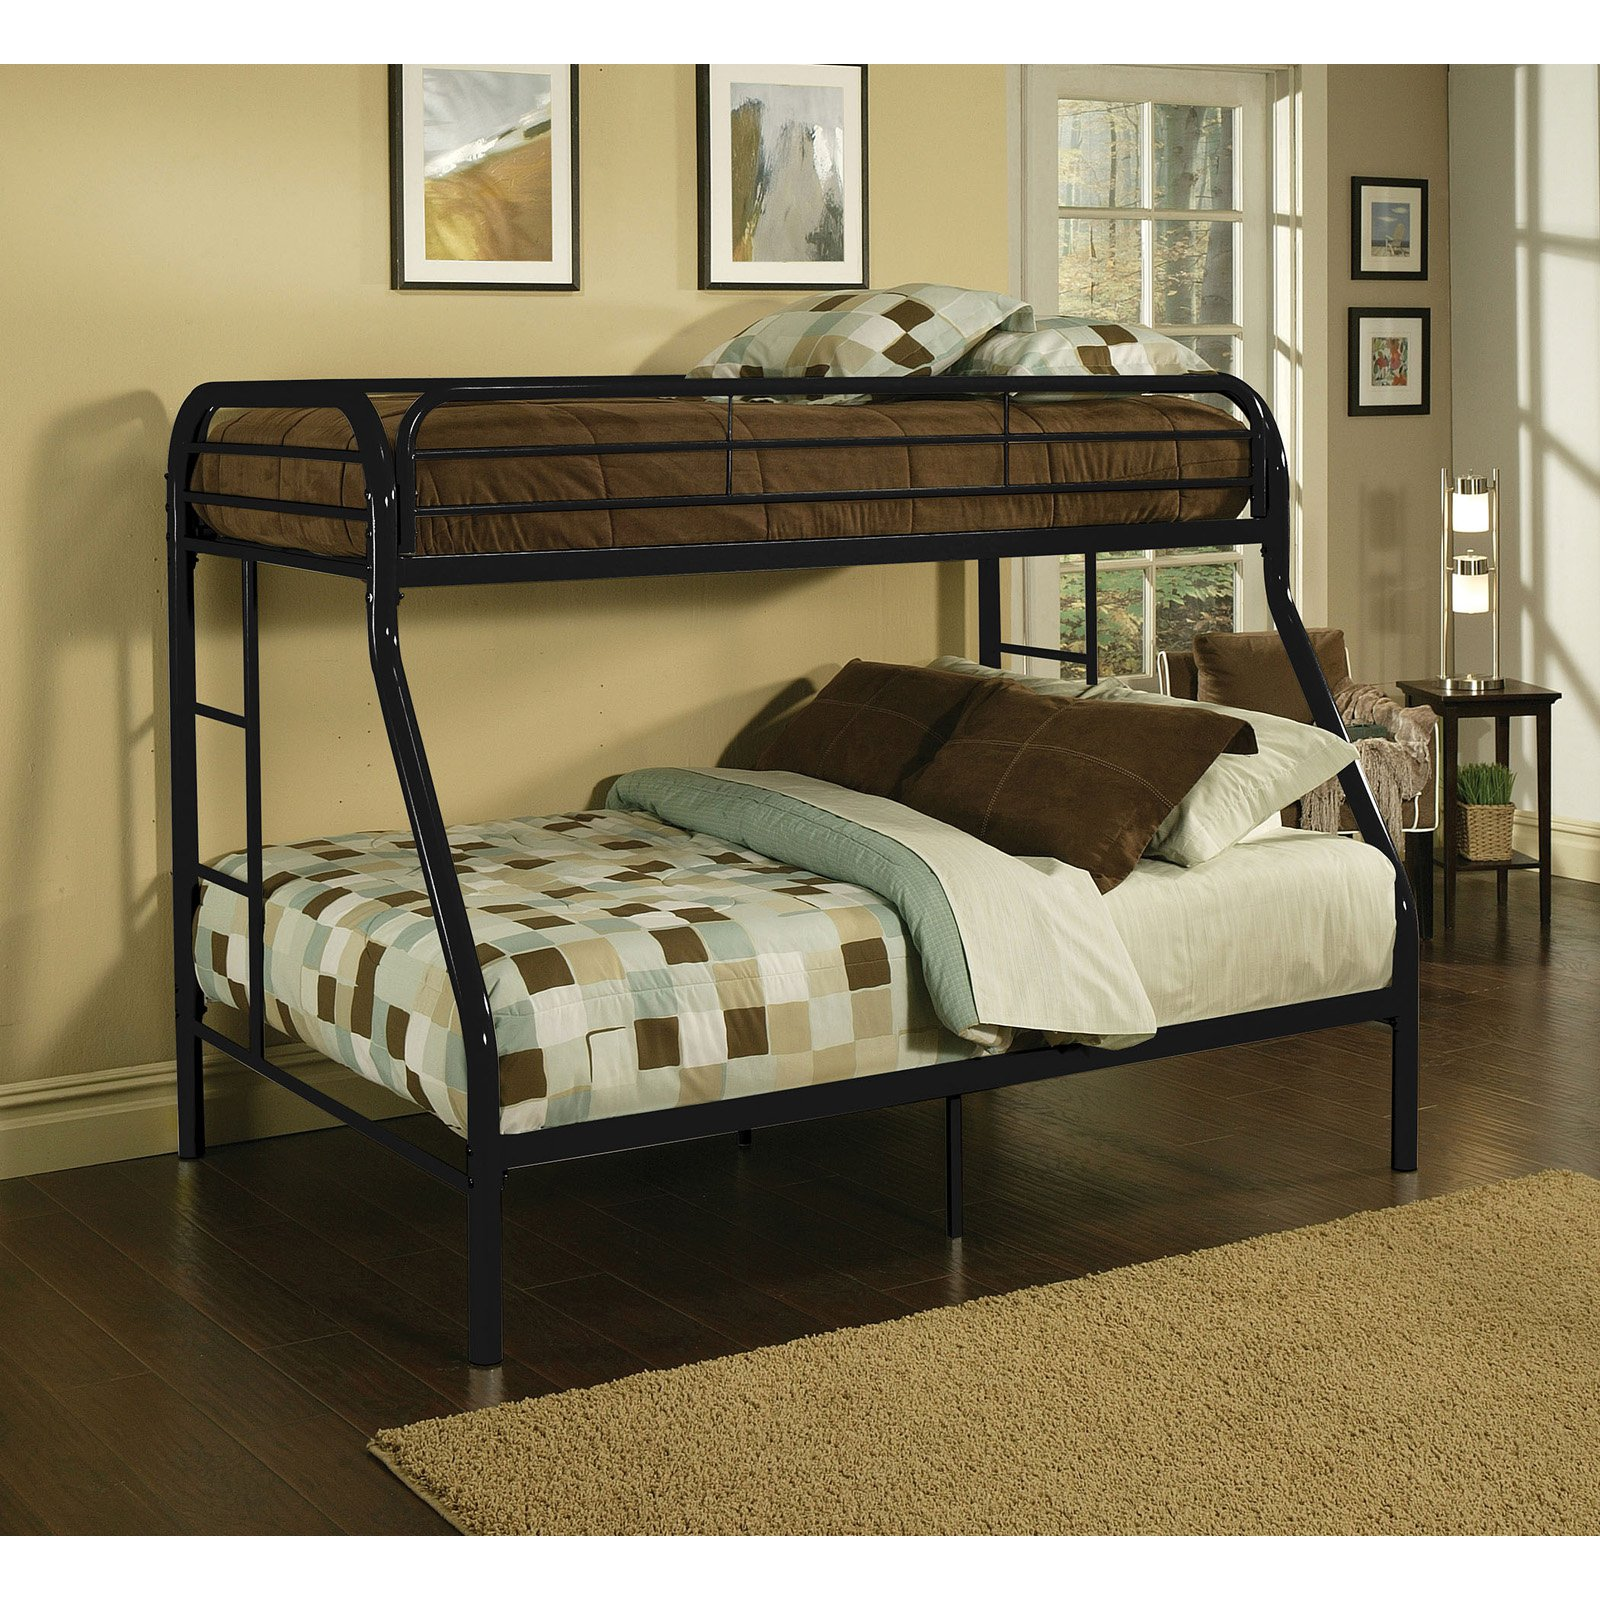 Acme Furniture Tritan Twin XL Over Queen Metal Bunk Bed, Black by Acme Furniture